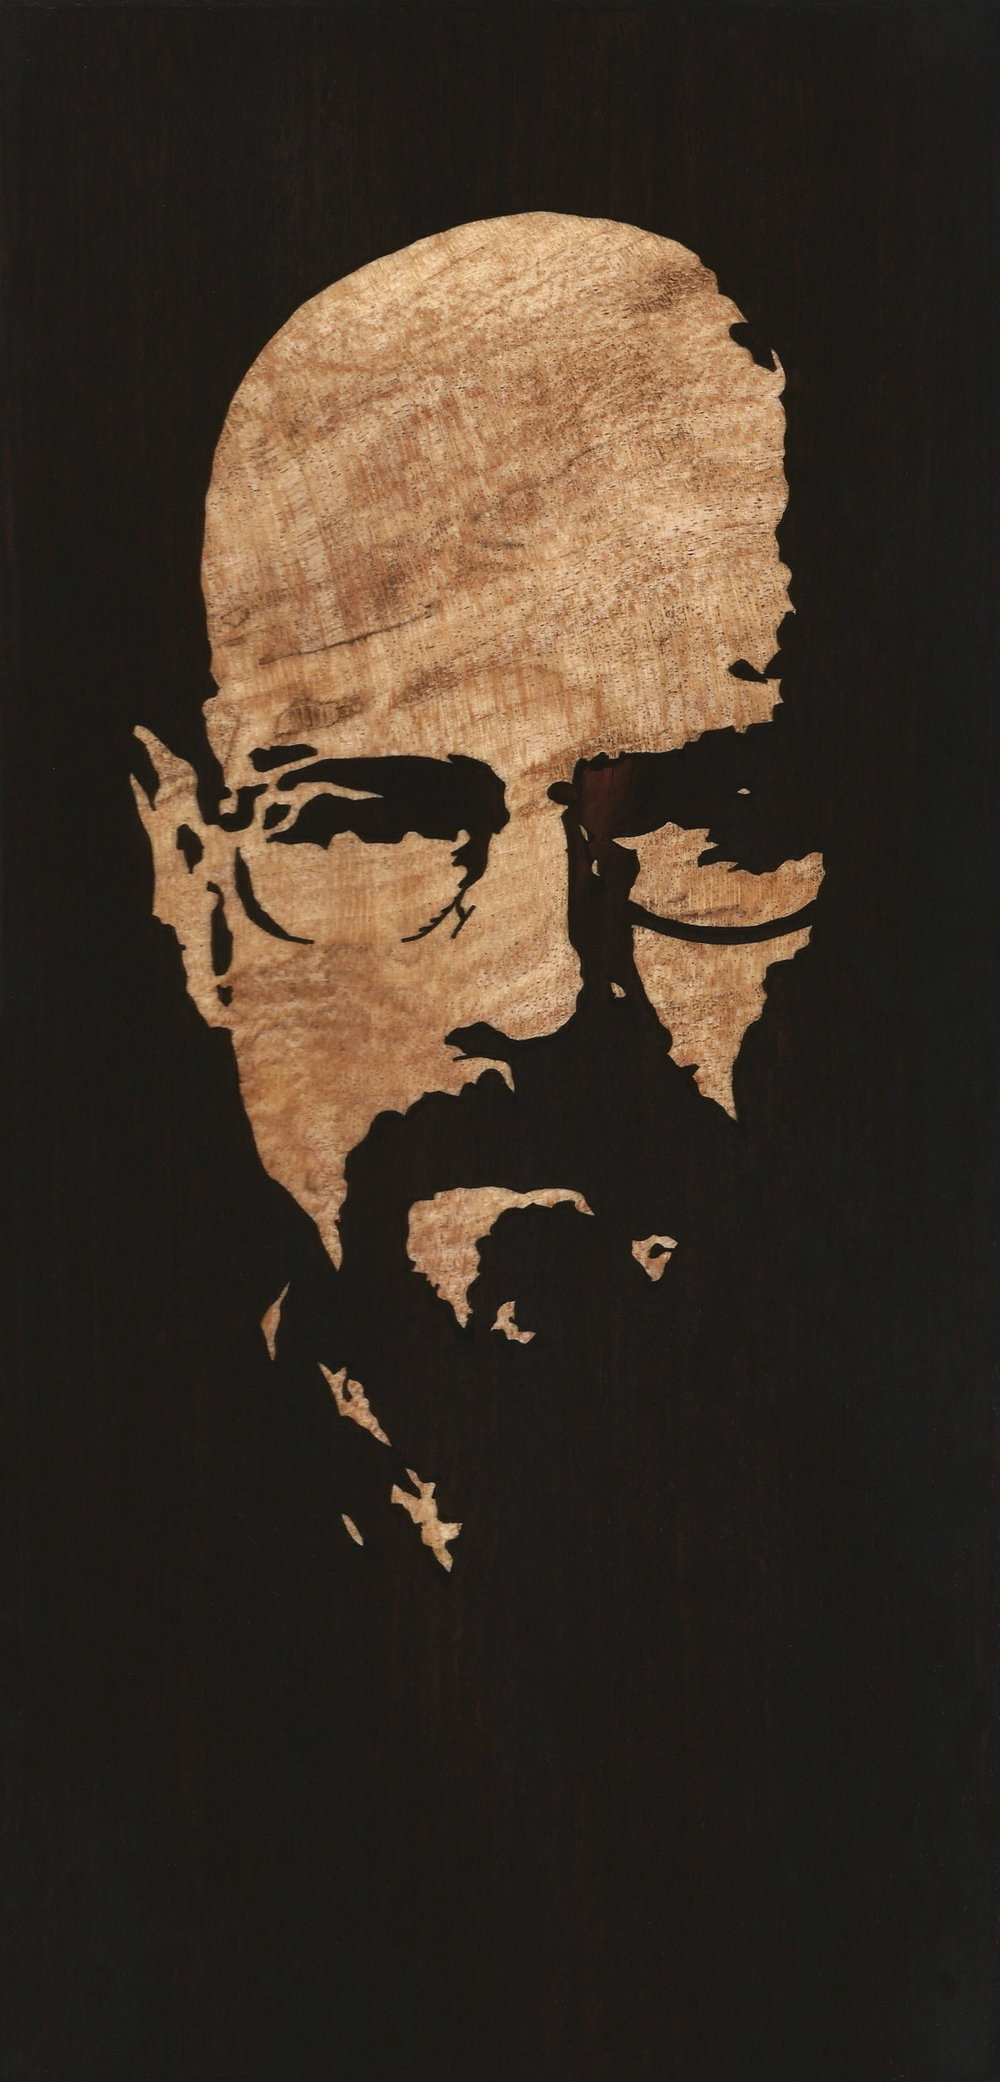 HEISENBERG INLAY